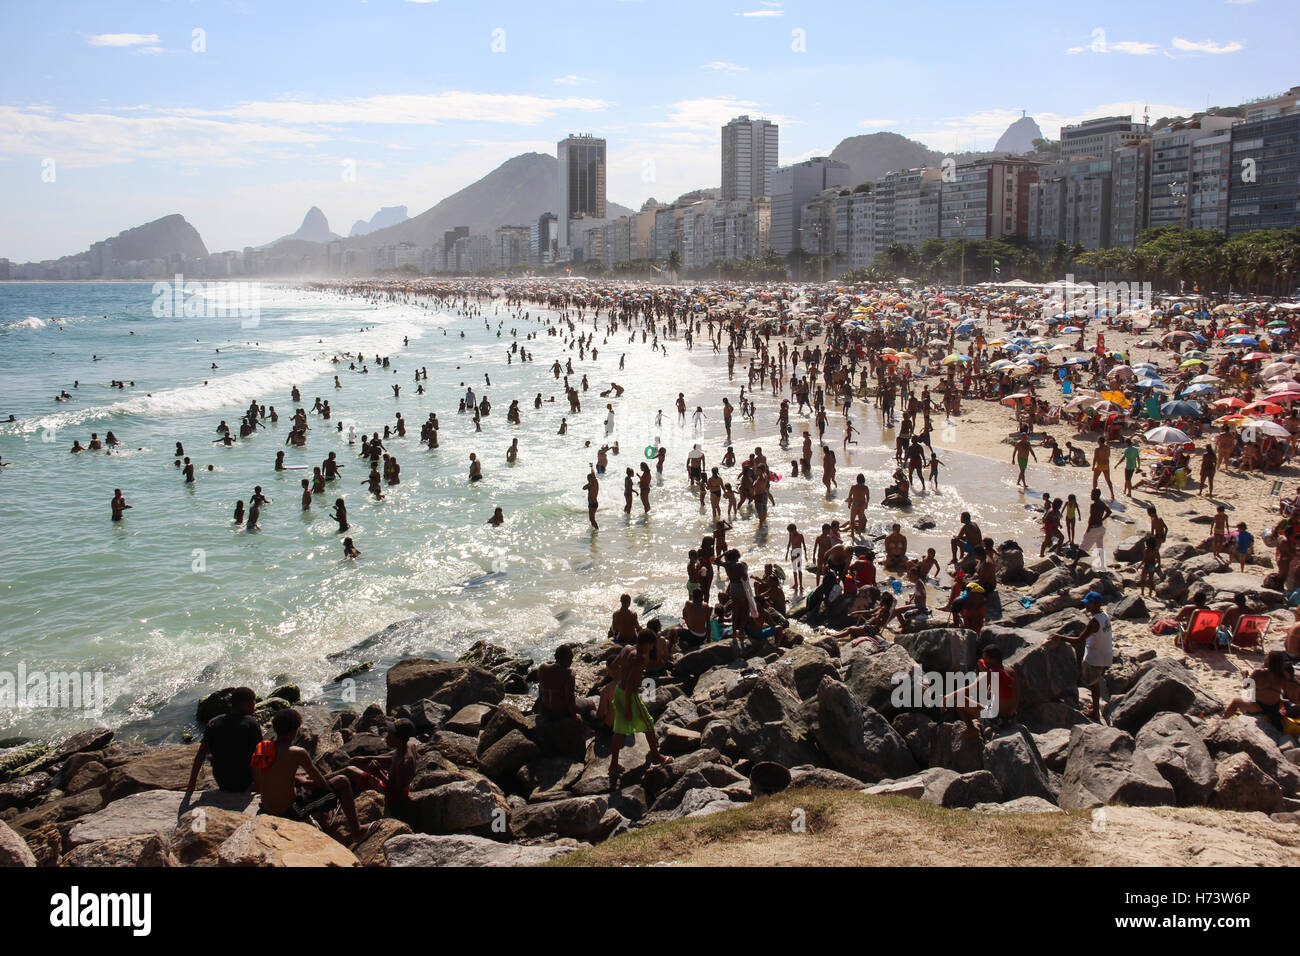 Rio de Janeiro, Brazil, November 02, 2016: Summer officially begins in Brazil only on 21 December, but the beaches - Stock Image